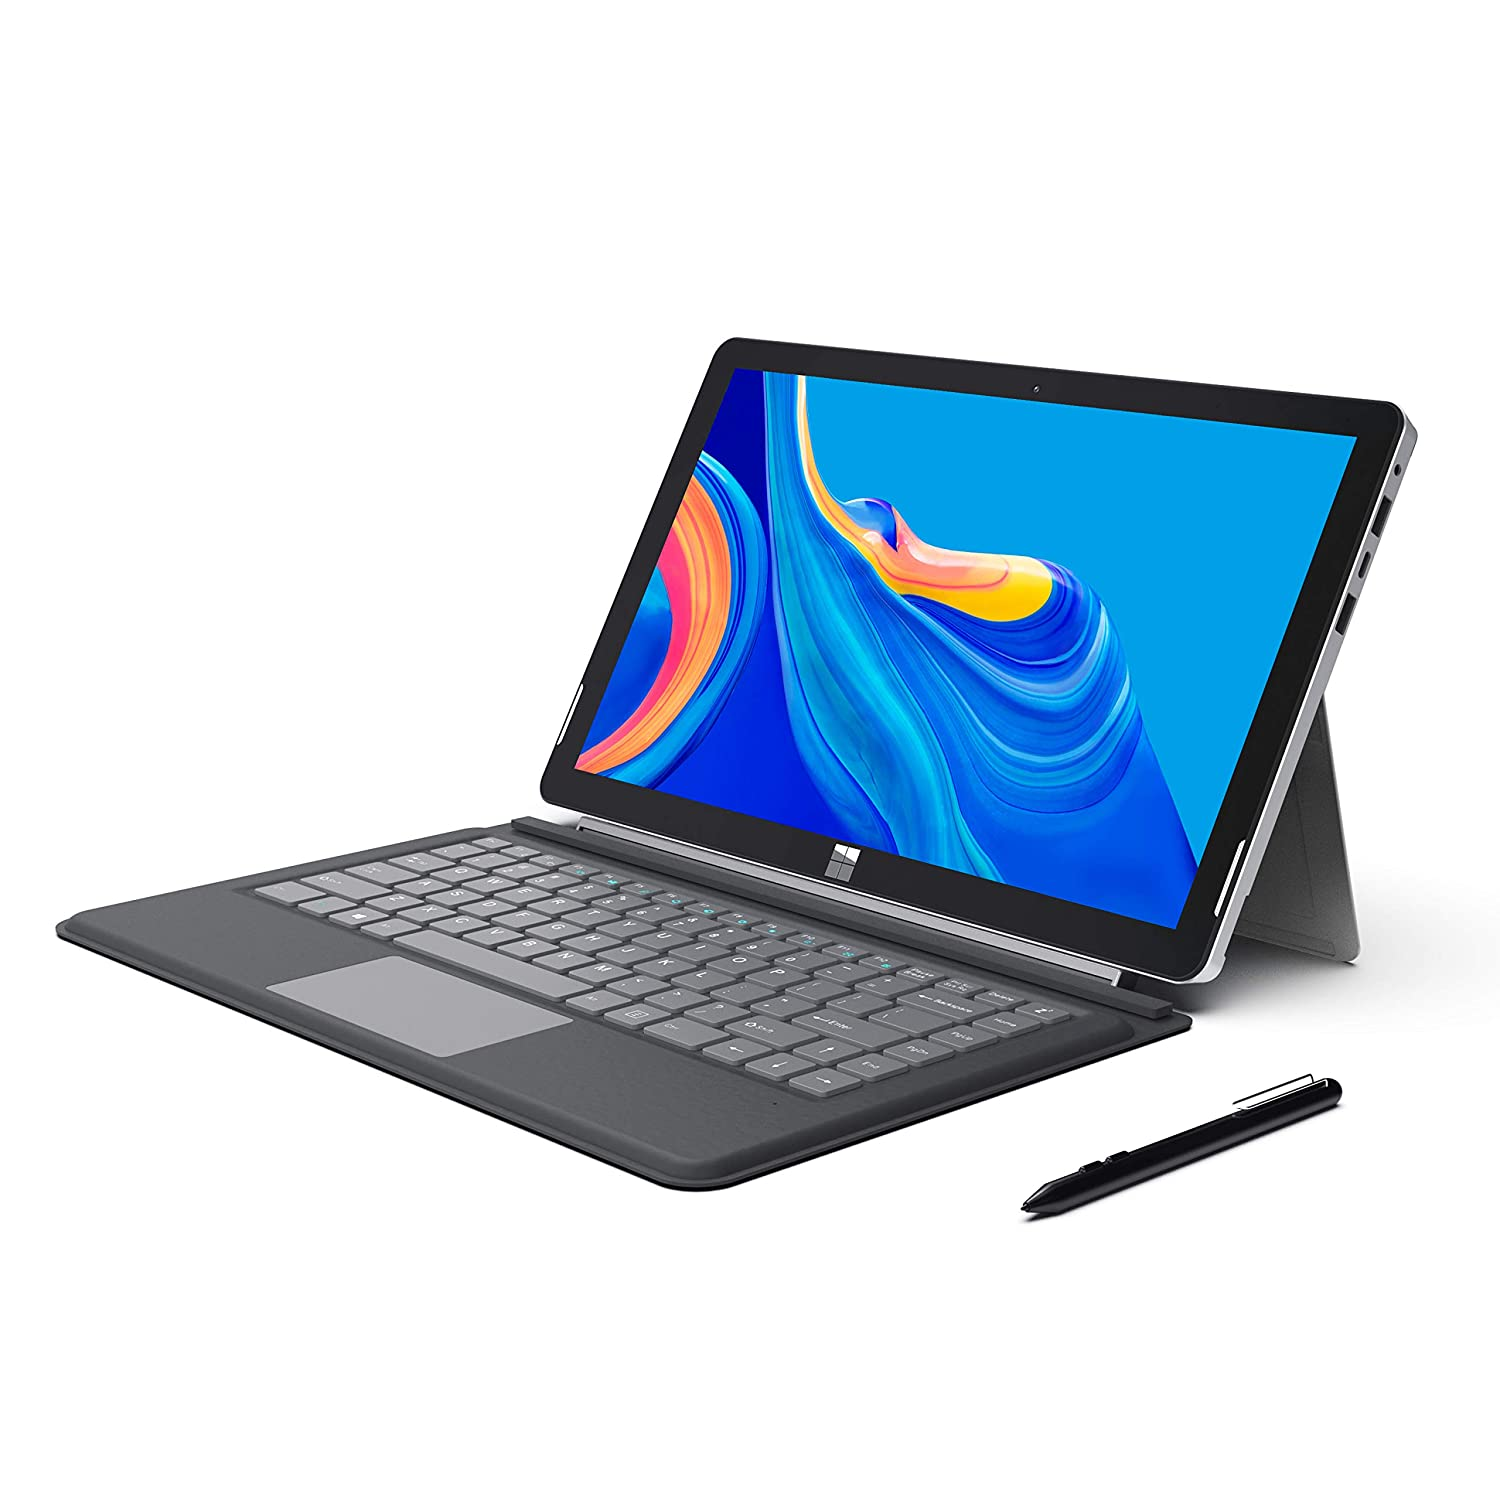 Guía: Las 9 mejores tablets Windows baratas (Actualizado abril de 2020) 3 tablets windows baratas